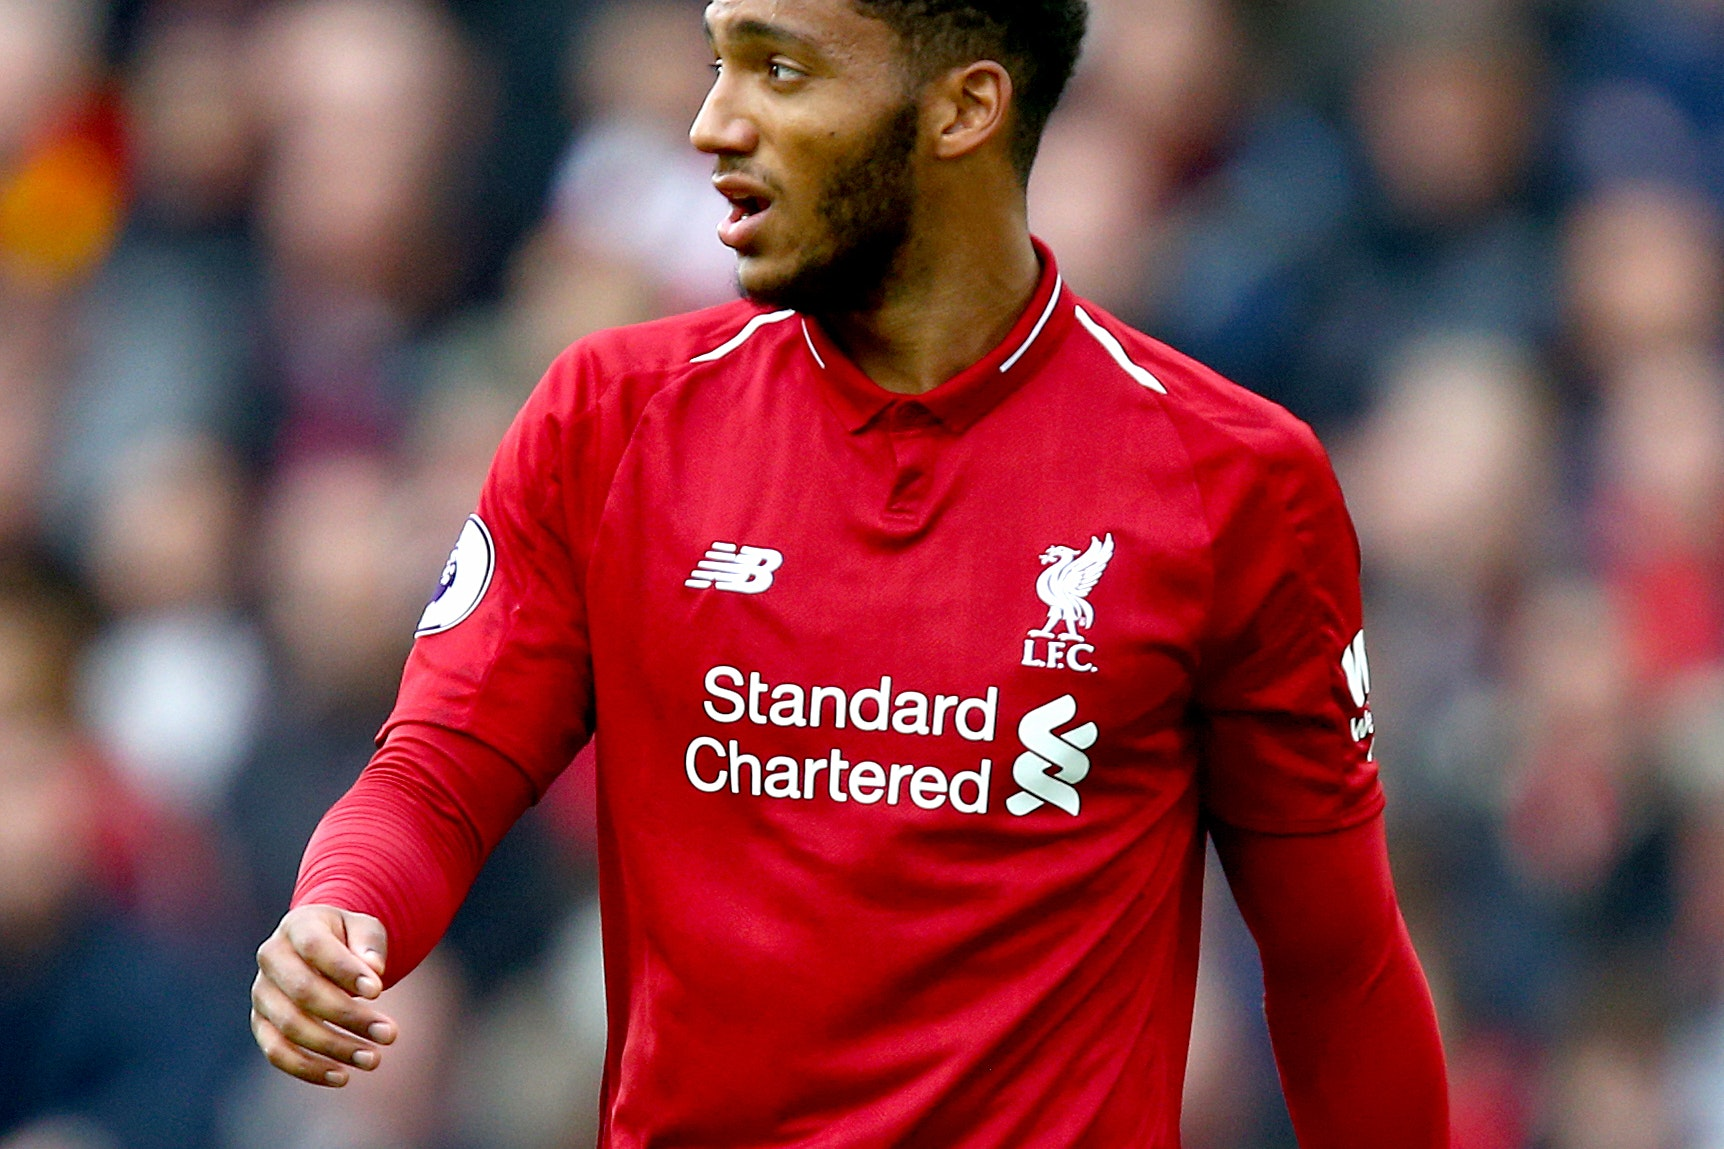 Liverpool's Joe Gomez is set for a spell on the sidelines